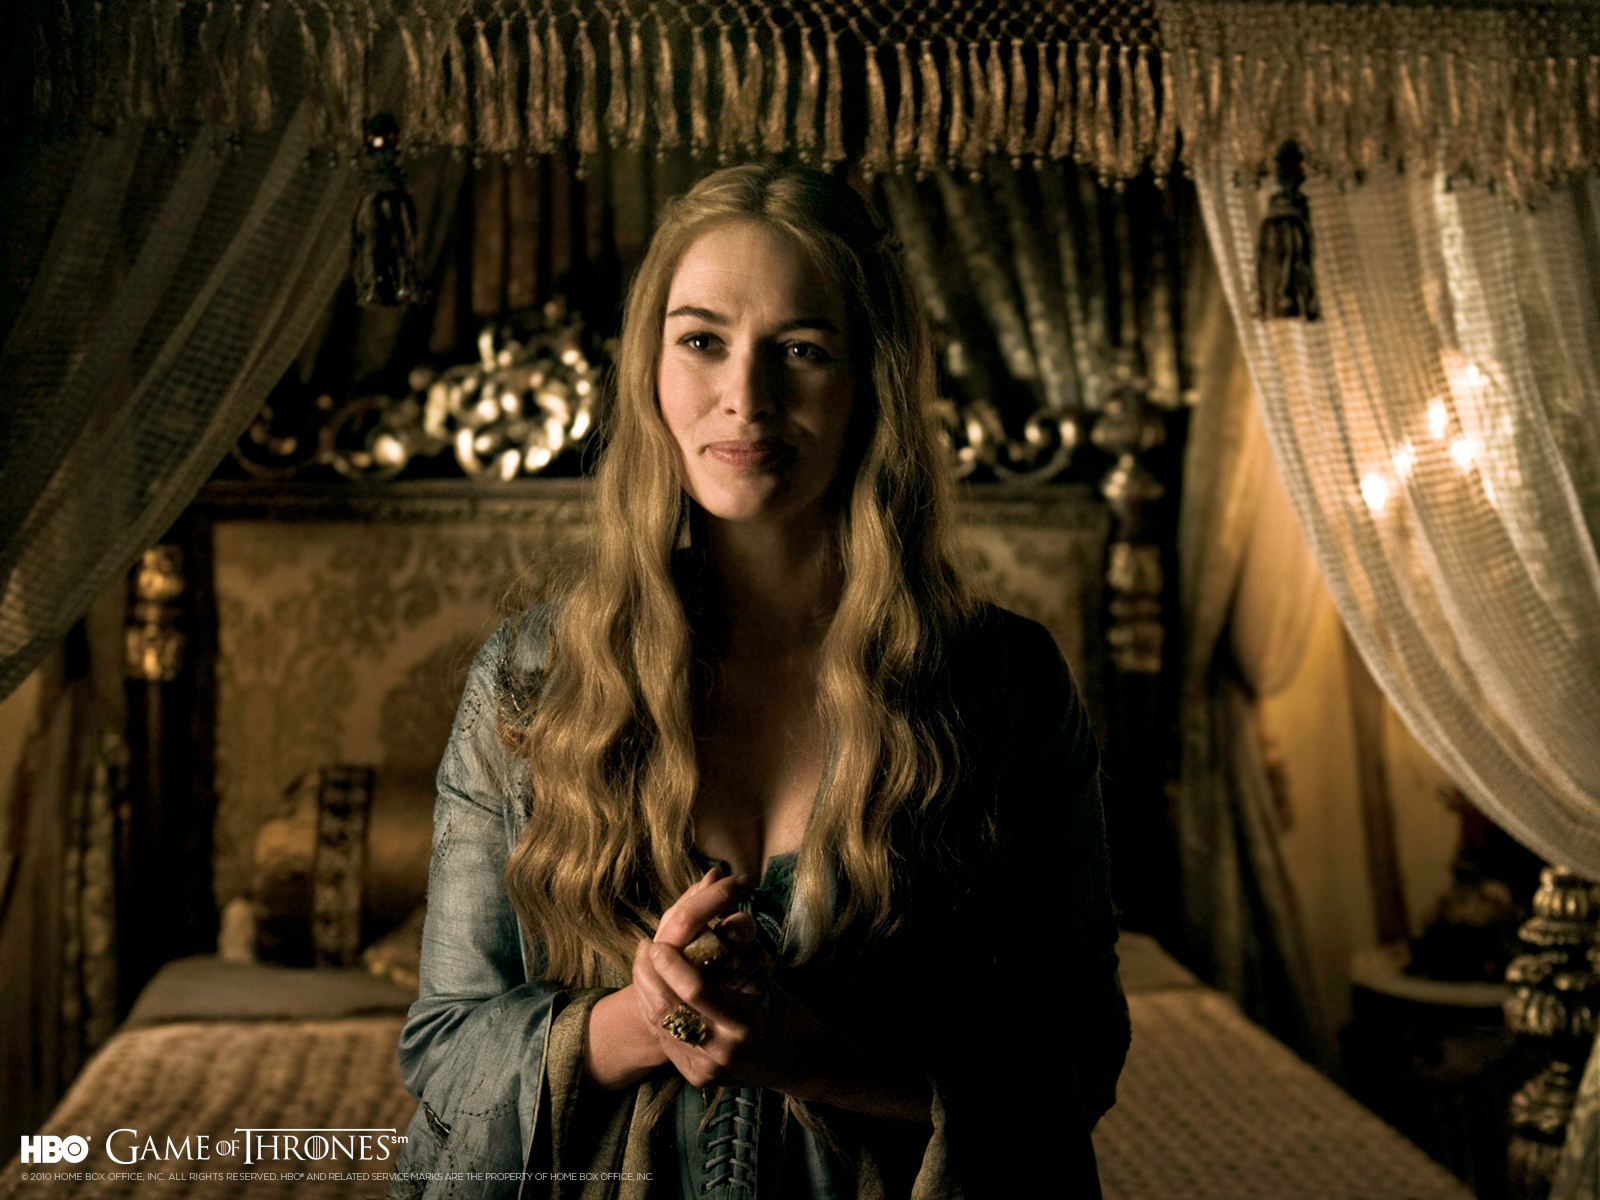 HBO Game of Thrones Extras Character Wallpapers 1600x1200